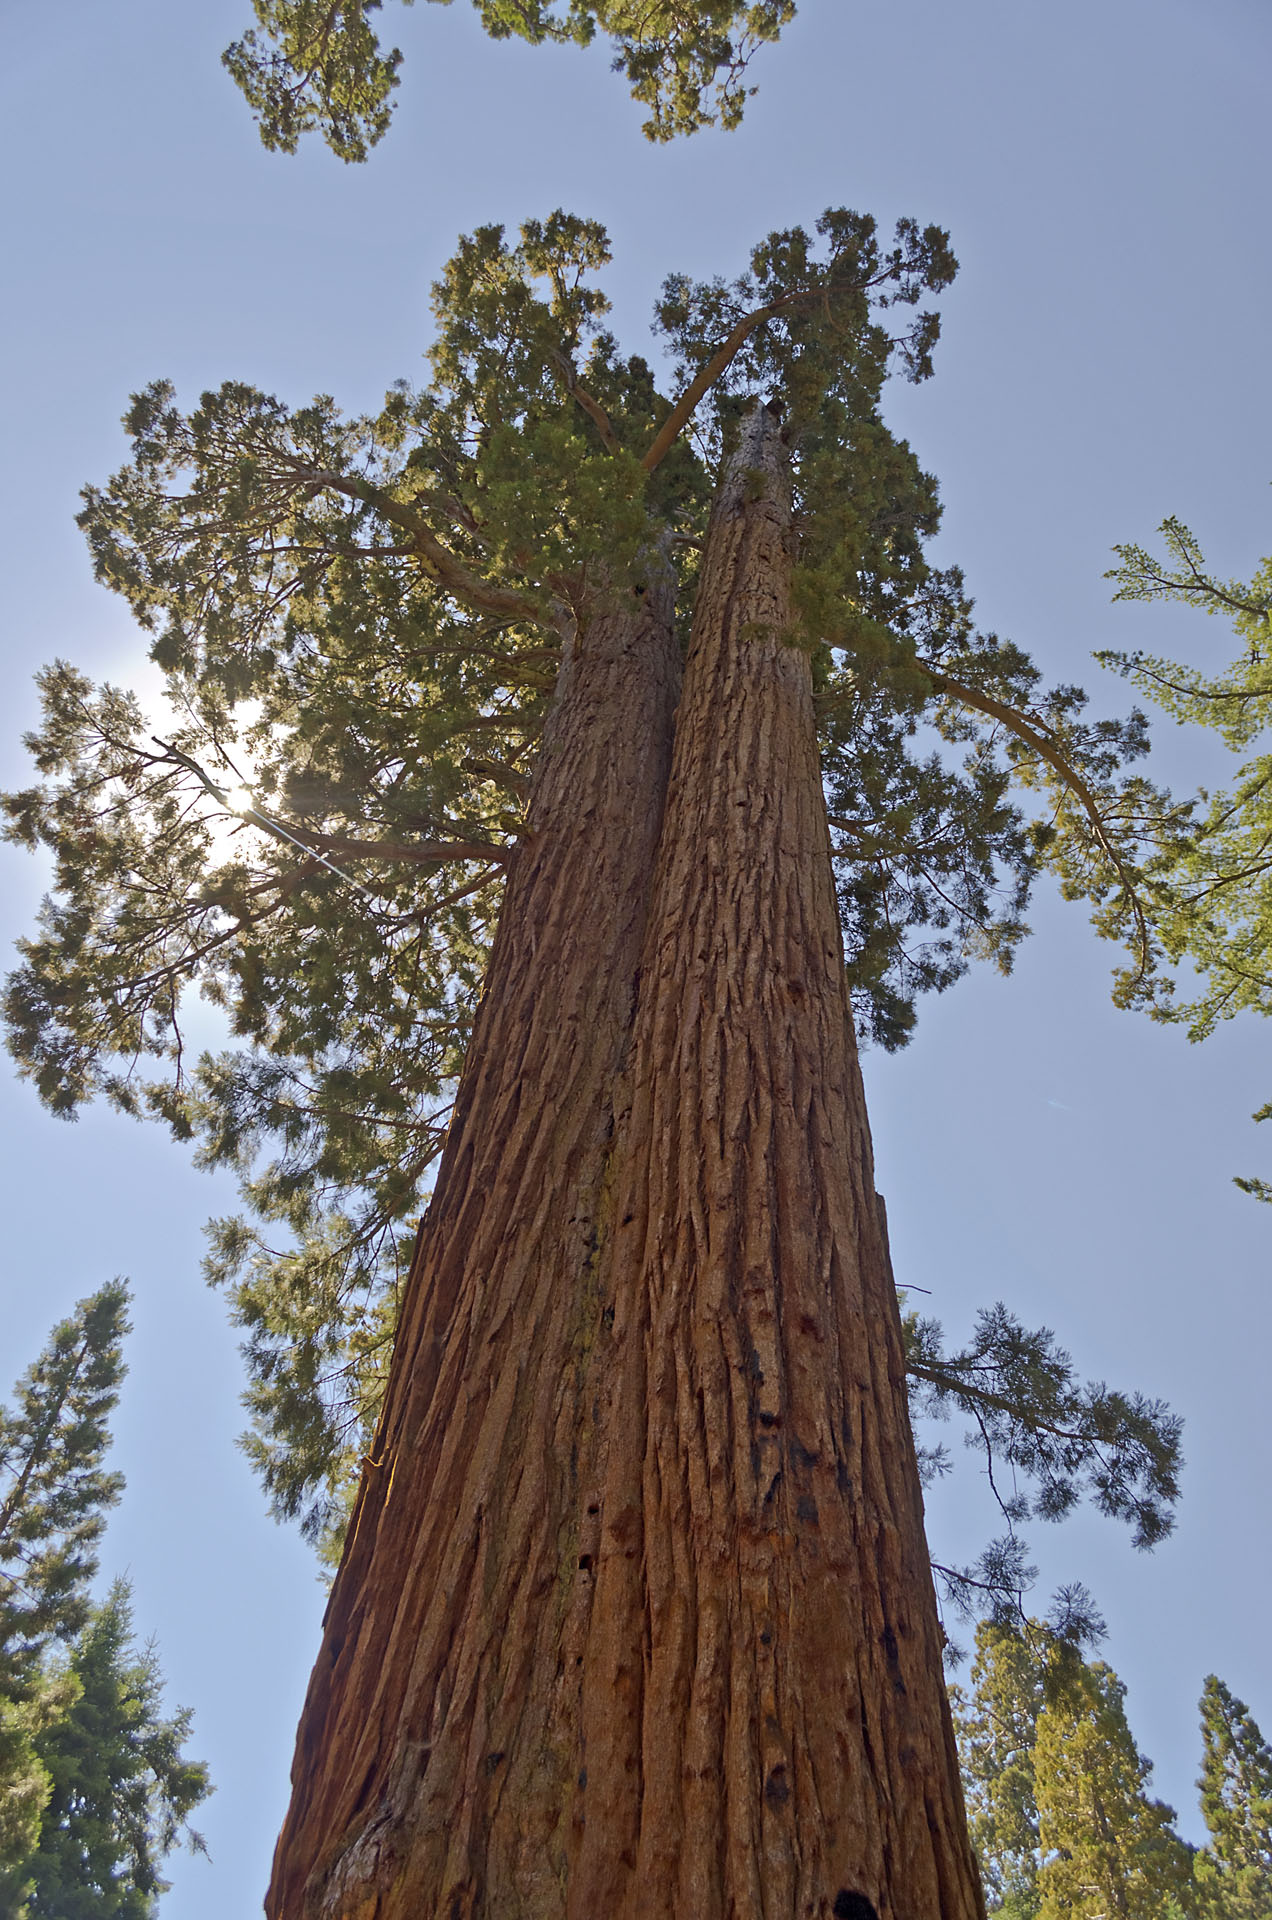 Giant Sequoias in Yosemite National Park, USA